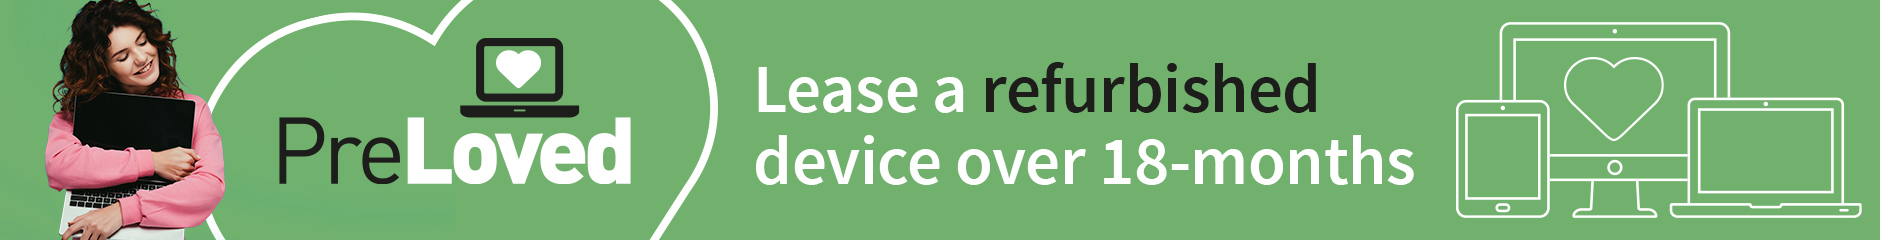 Lease a refurbished device over 18-months on PreLoved